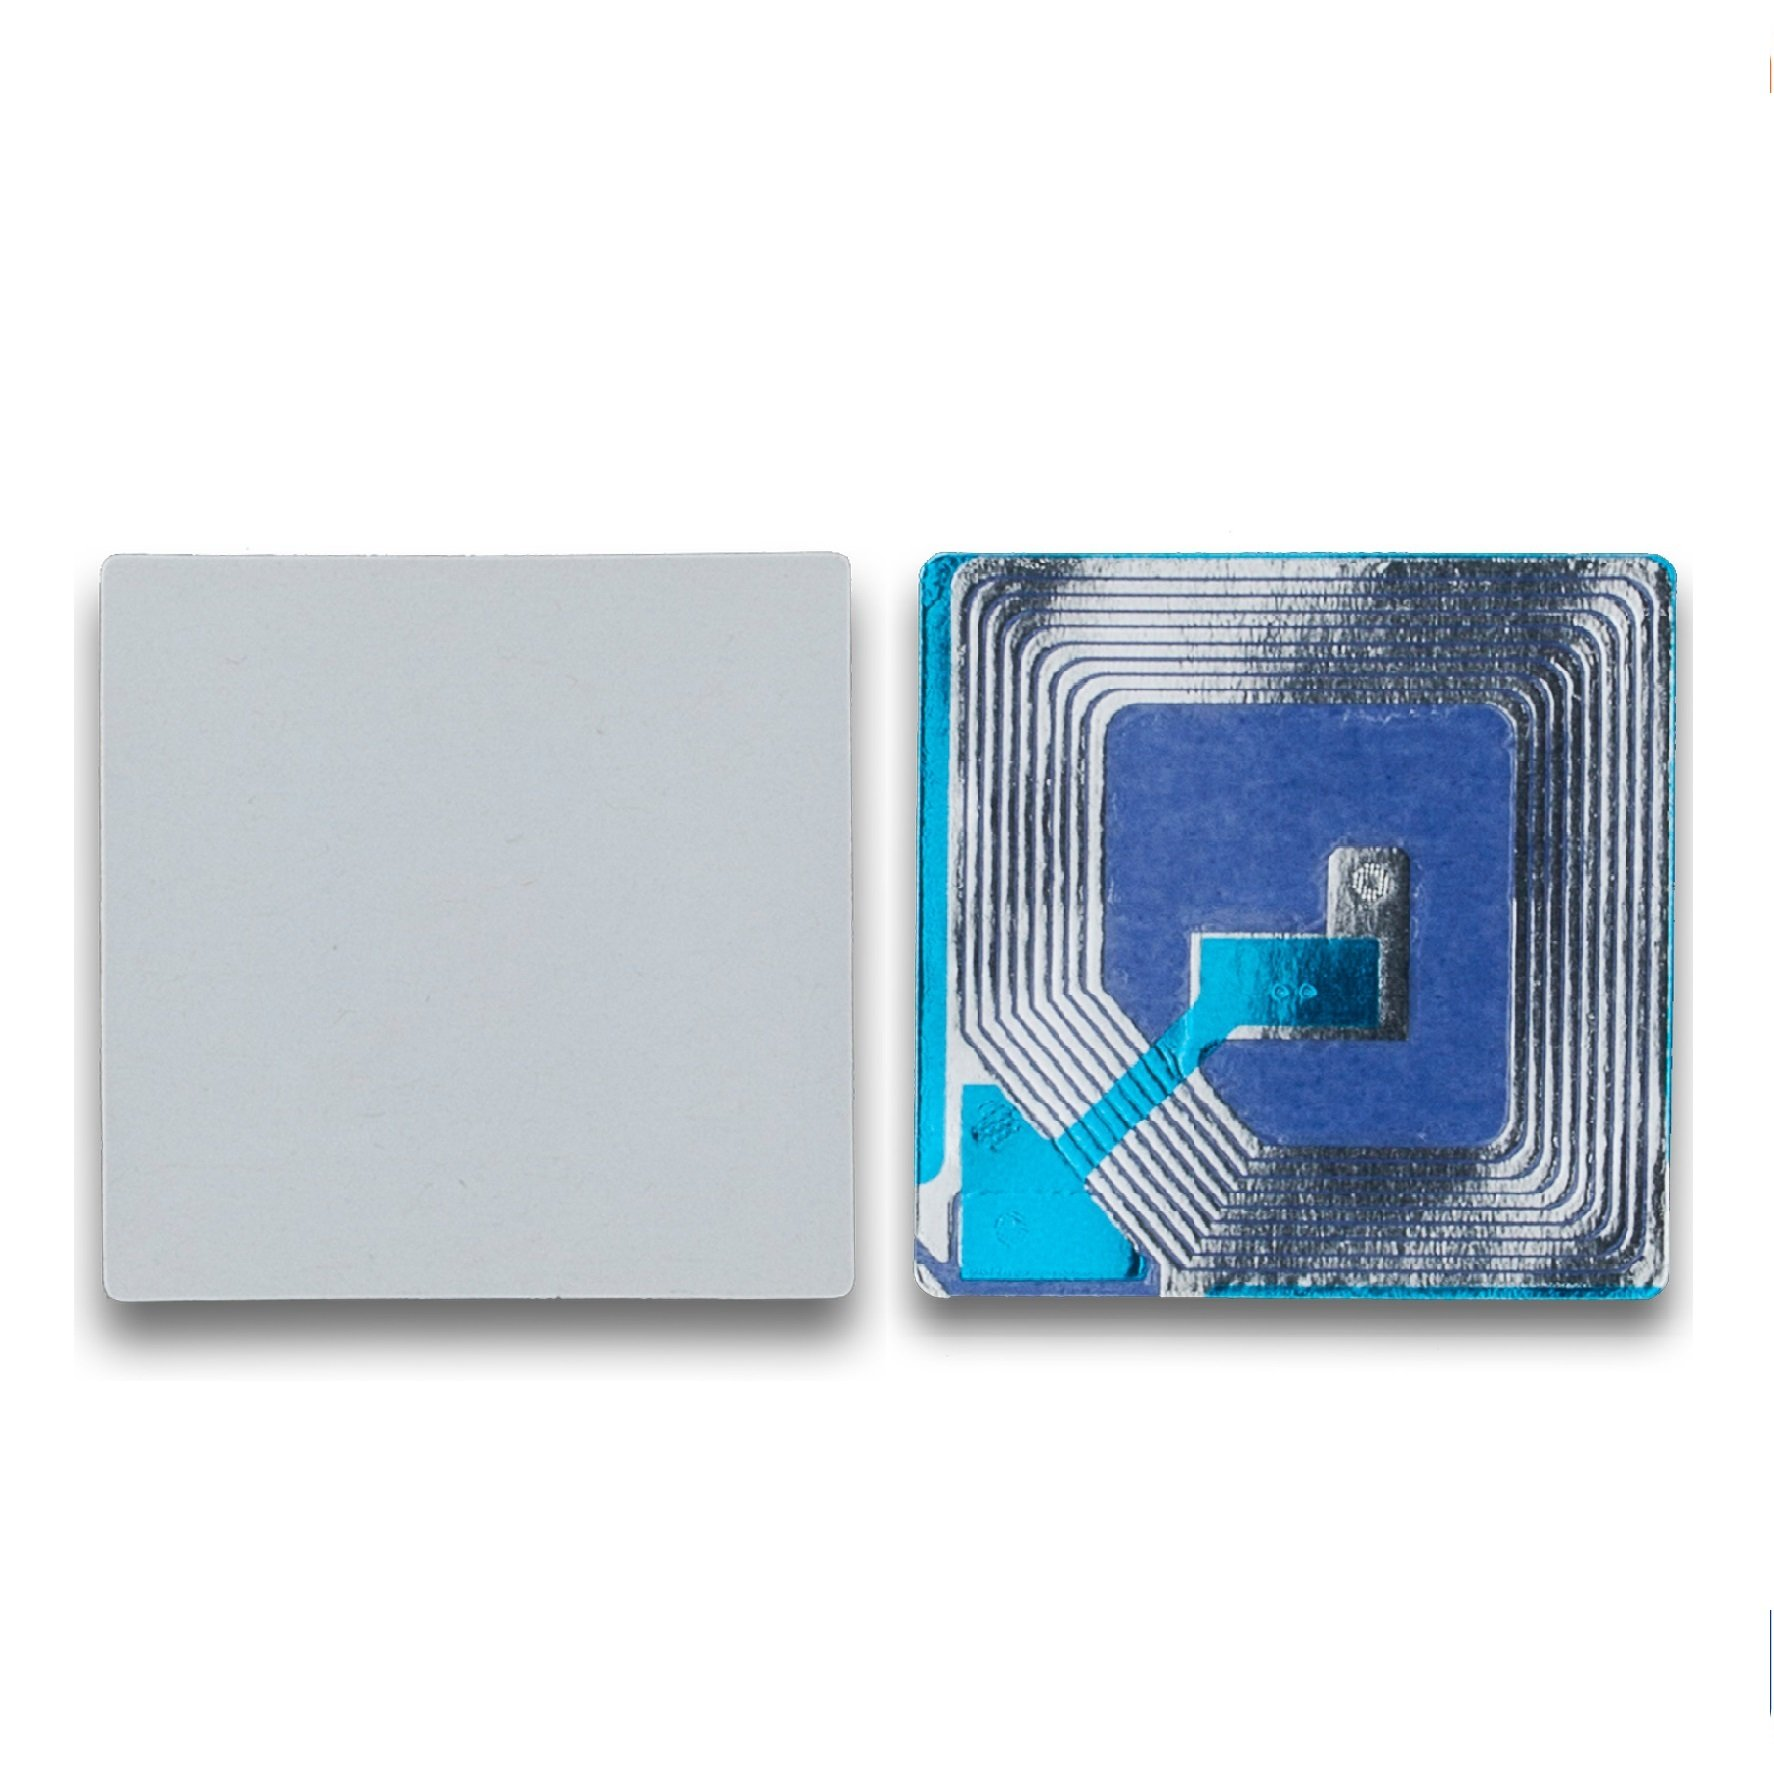 1000 Paper Security Label 1.5 X 1.5 Inch RF 8.2Mhz White Checkpoint Compatible EAS Loss Prevention